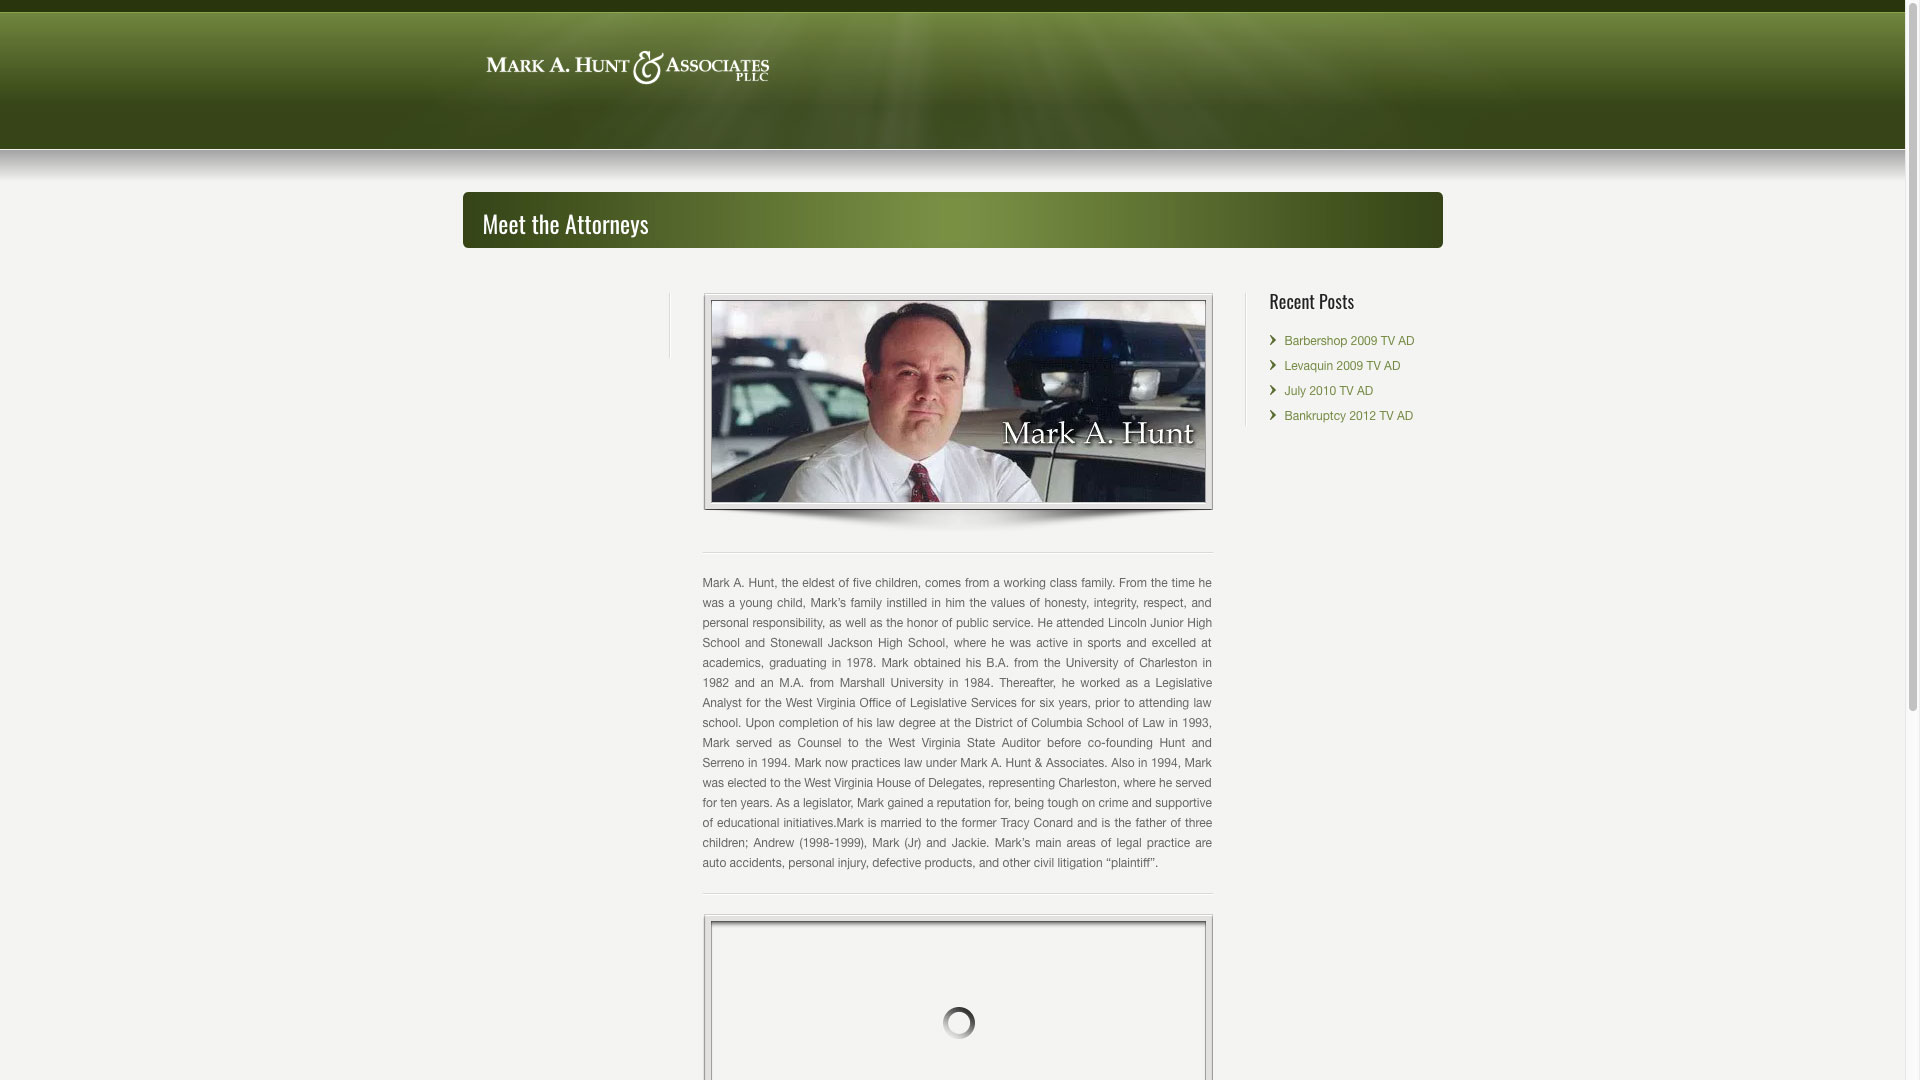 mark-hunt-meet-attourneys-web-design